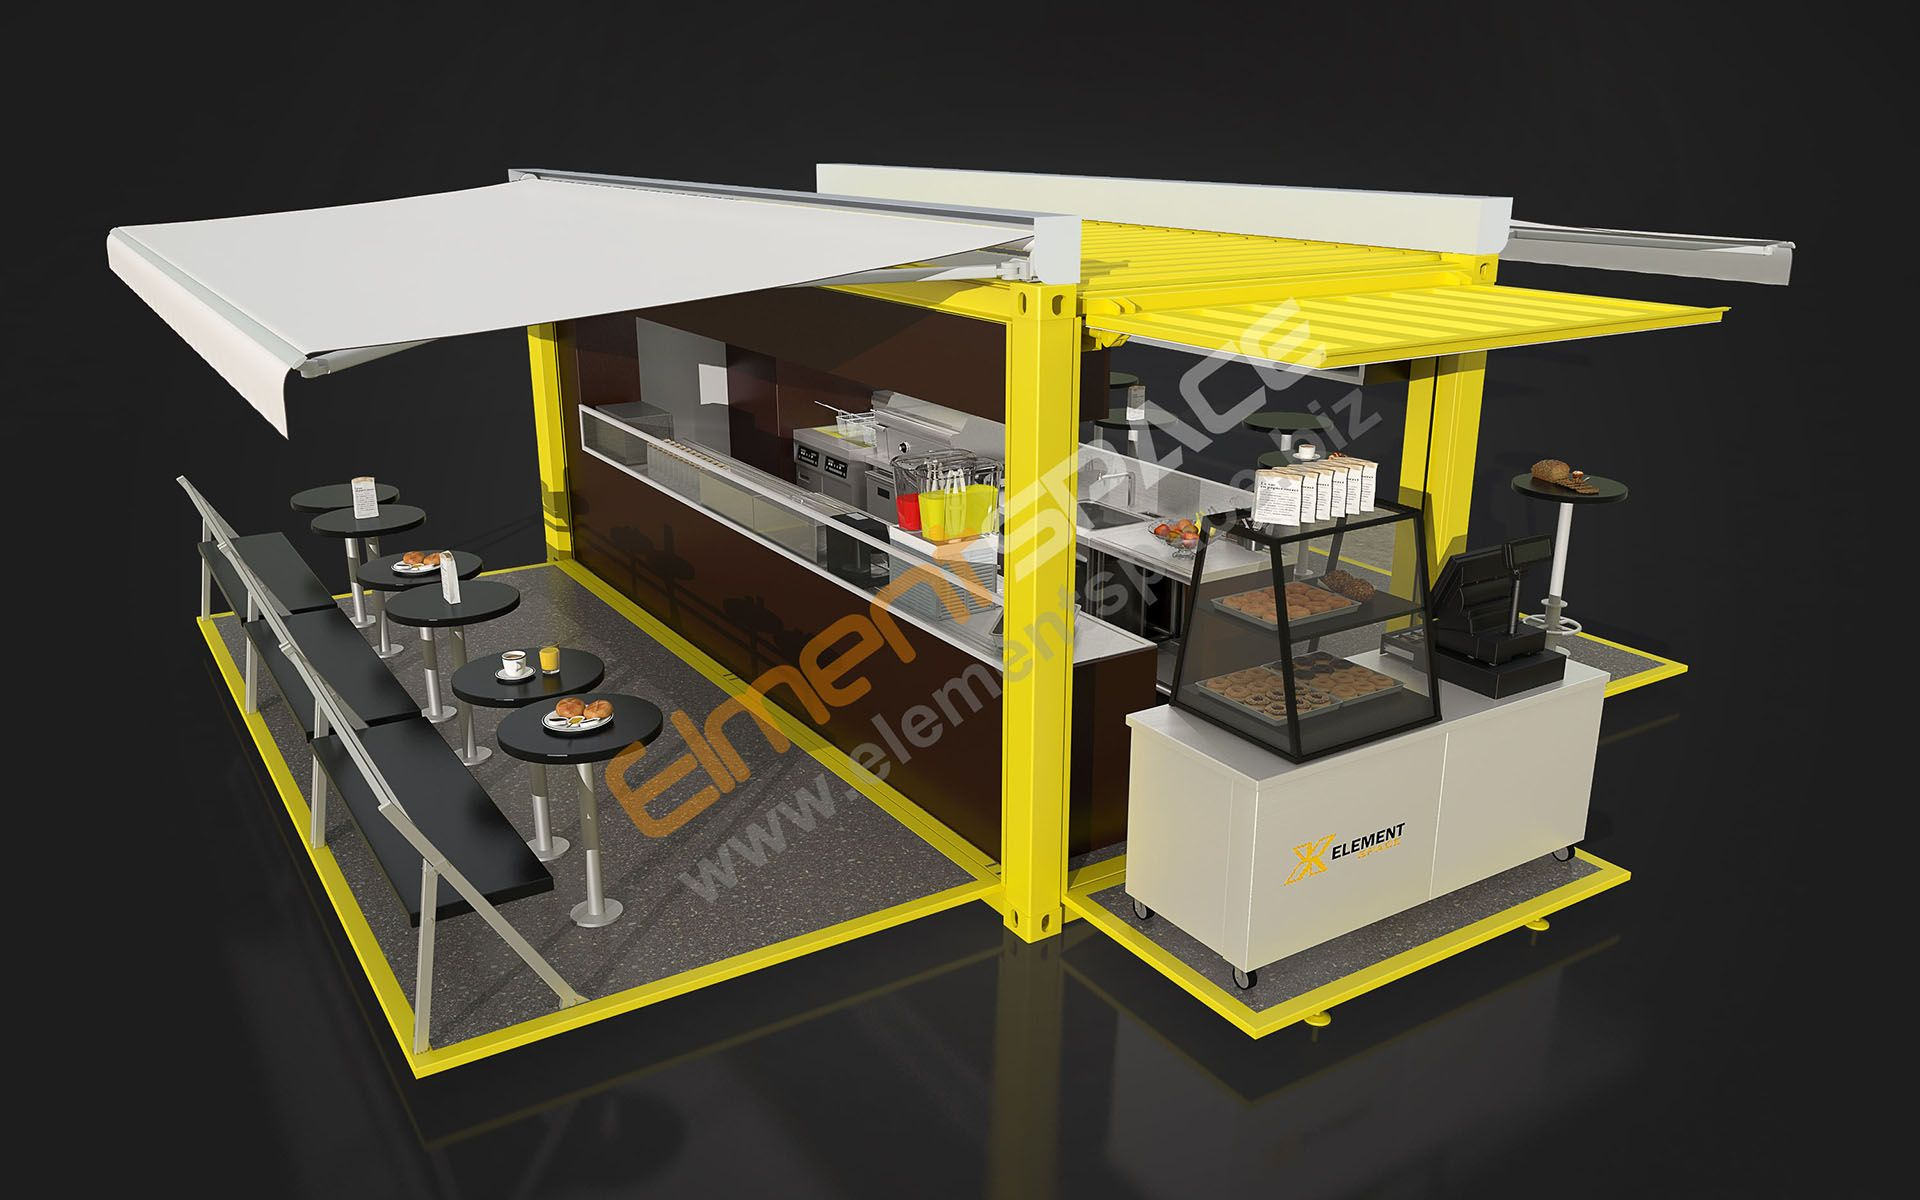 Interested in a popup container restaurant, kitchen or